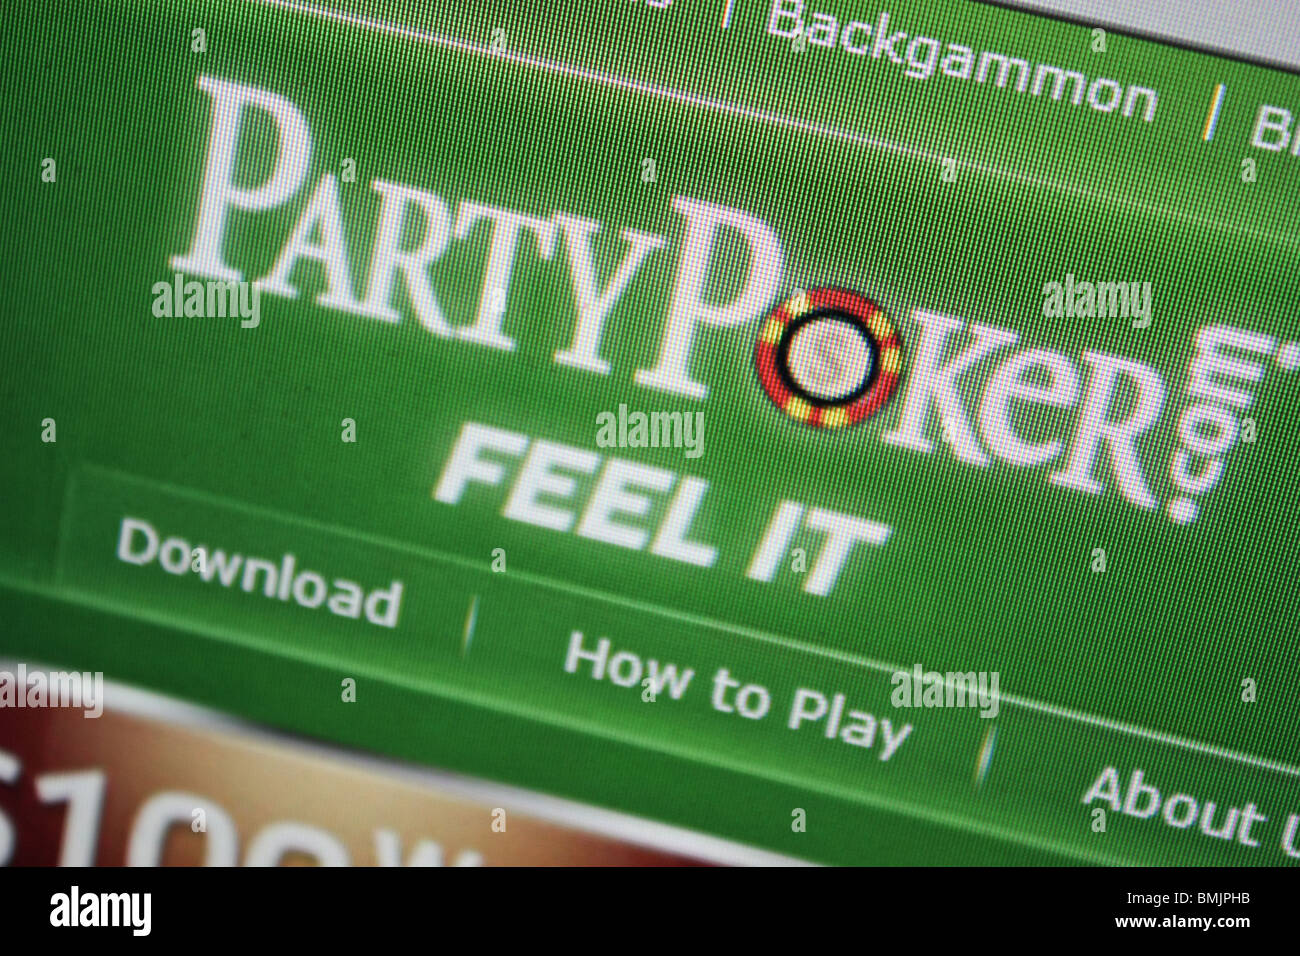 partypoker party poker online internet gamble - Stock Image